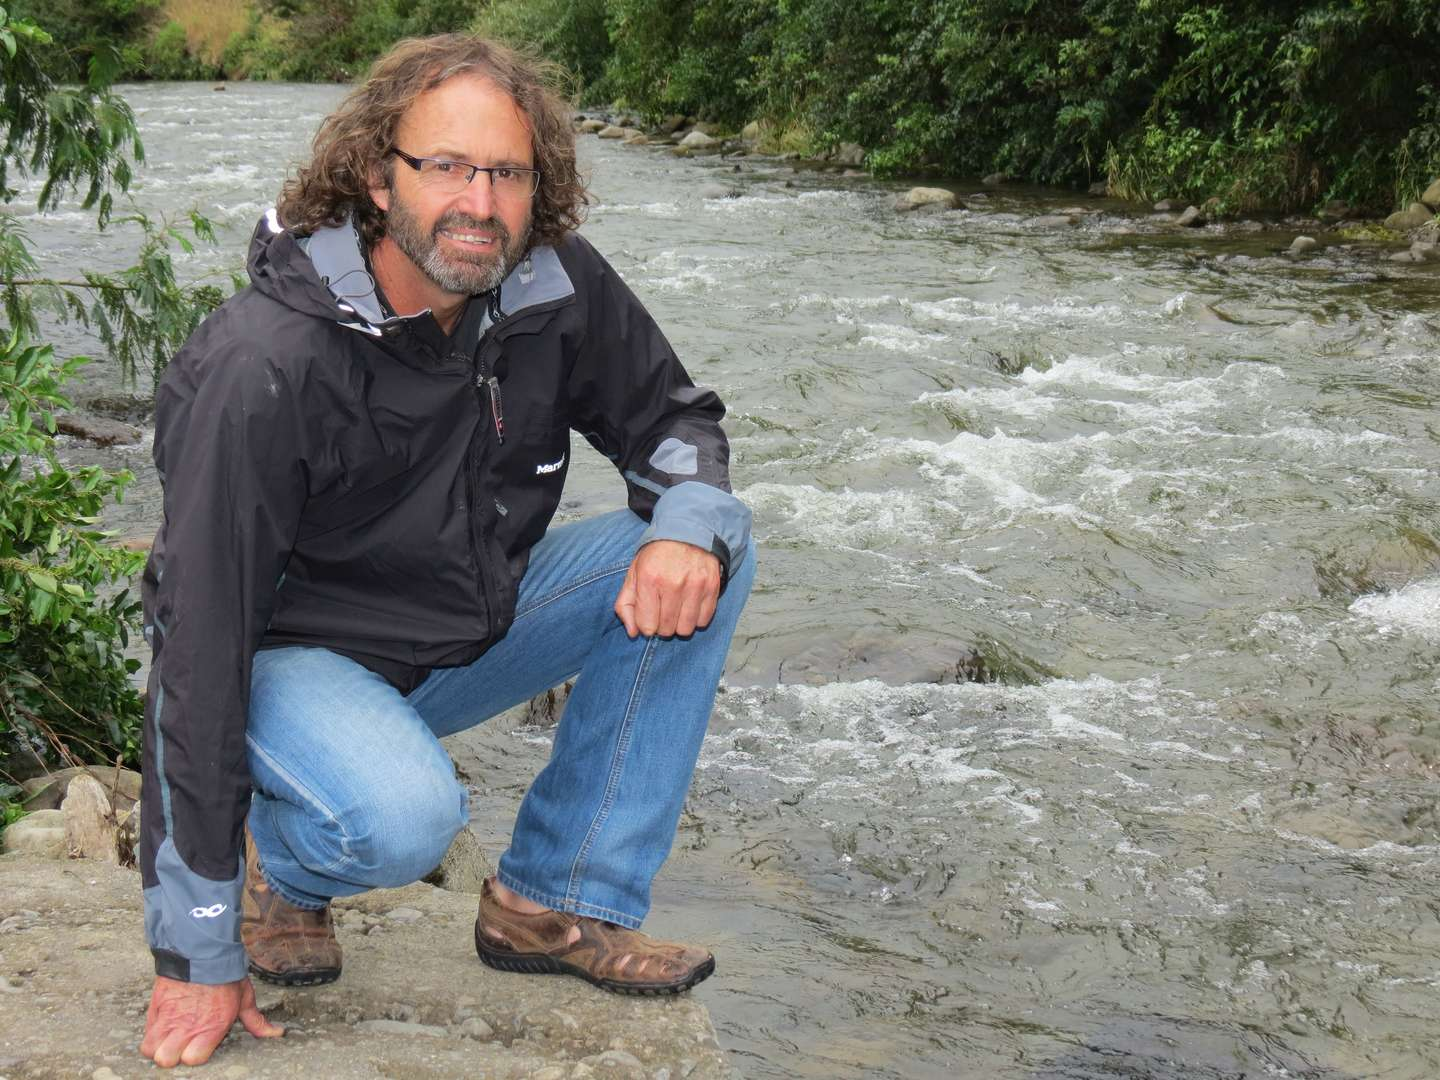 Fresh water ecologist Mike Joy